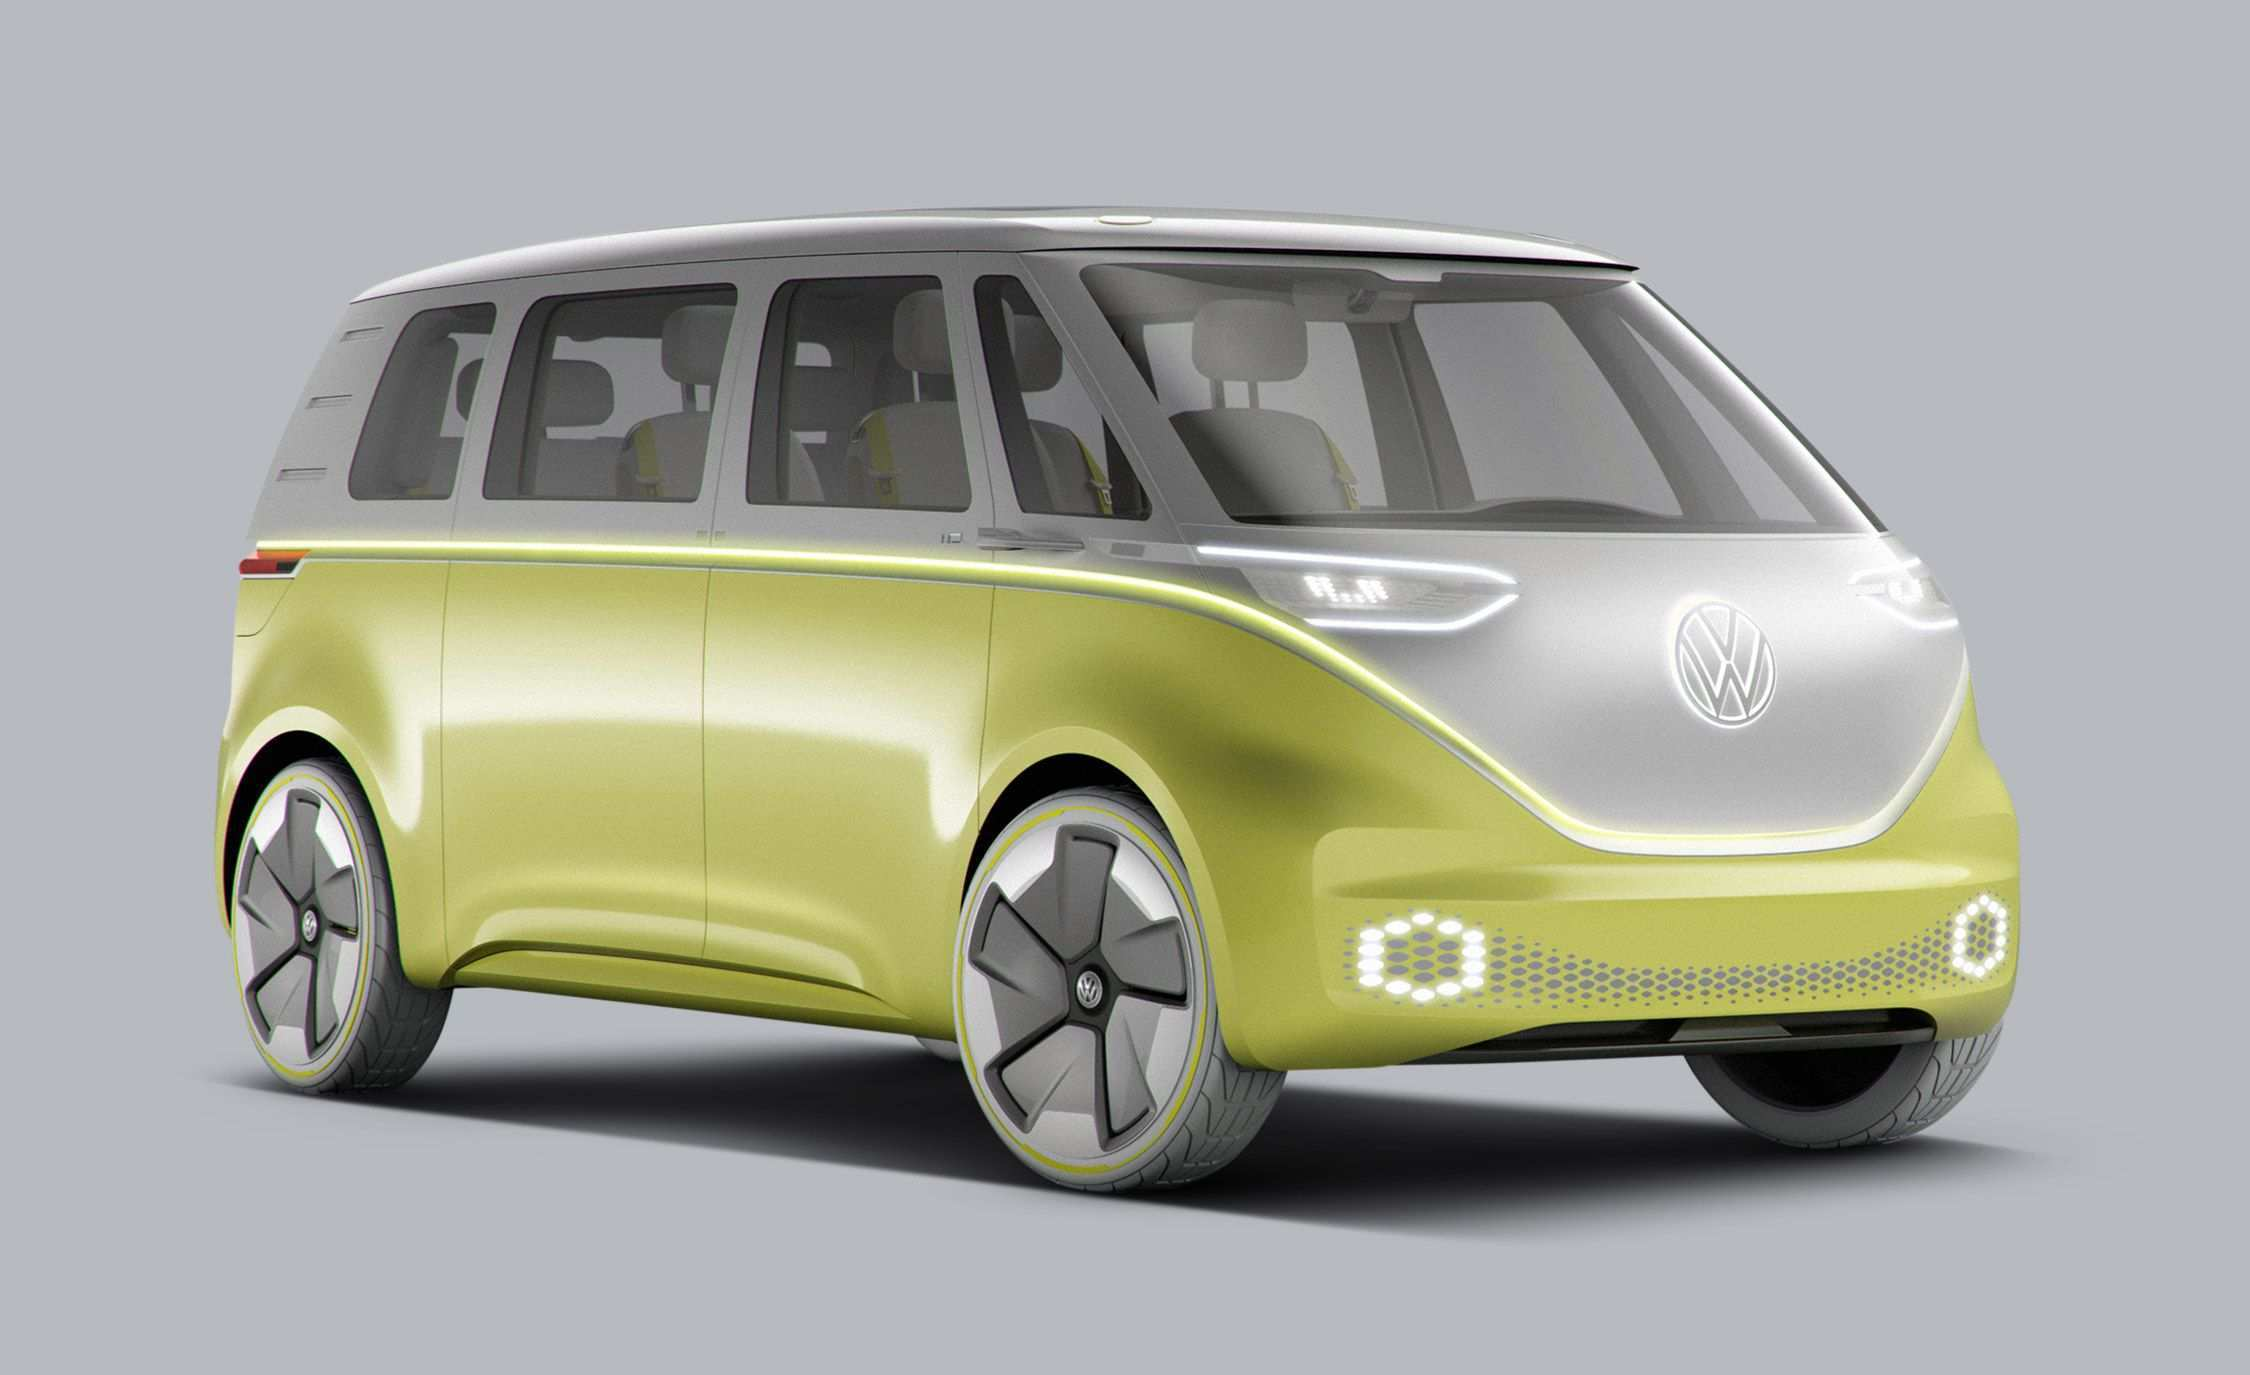 54 Best Review 2020 Volkswagen Van Exterior and Interior with 2020 Volkswagen Van